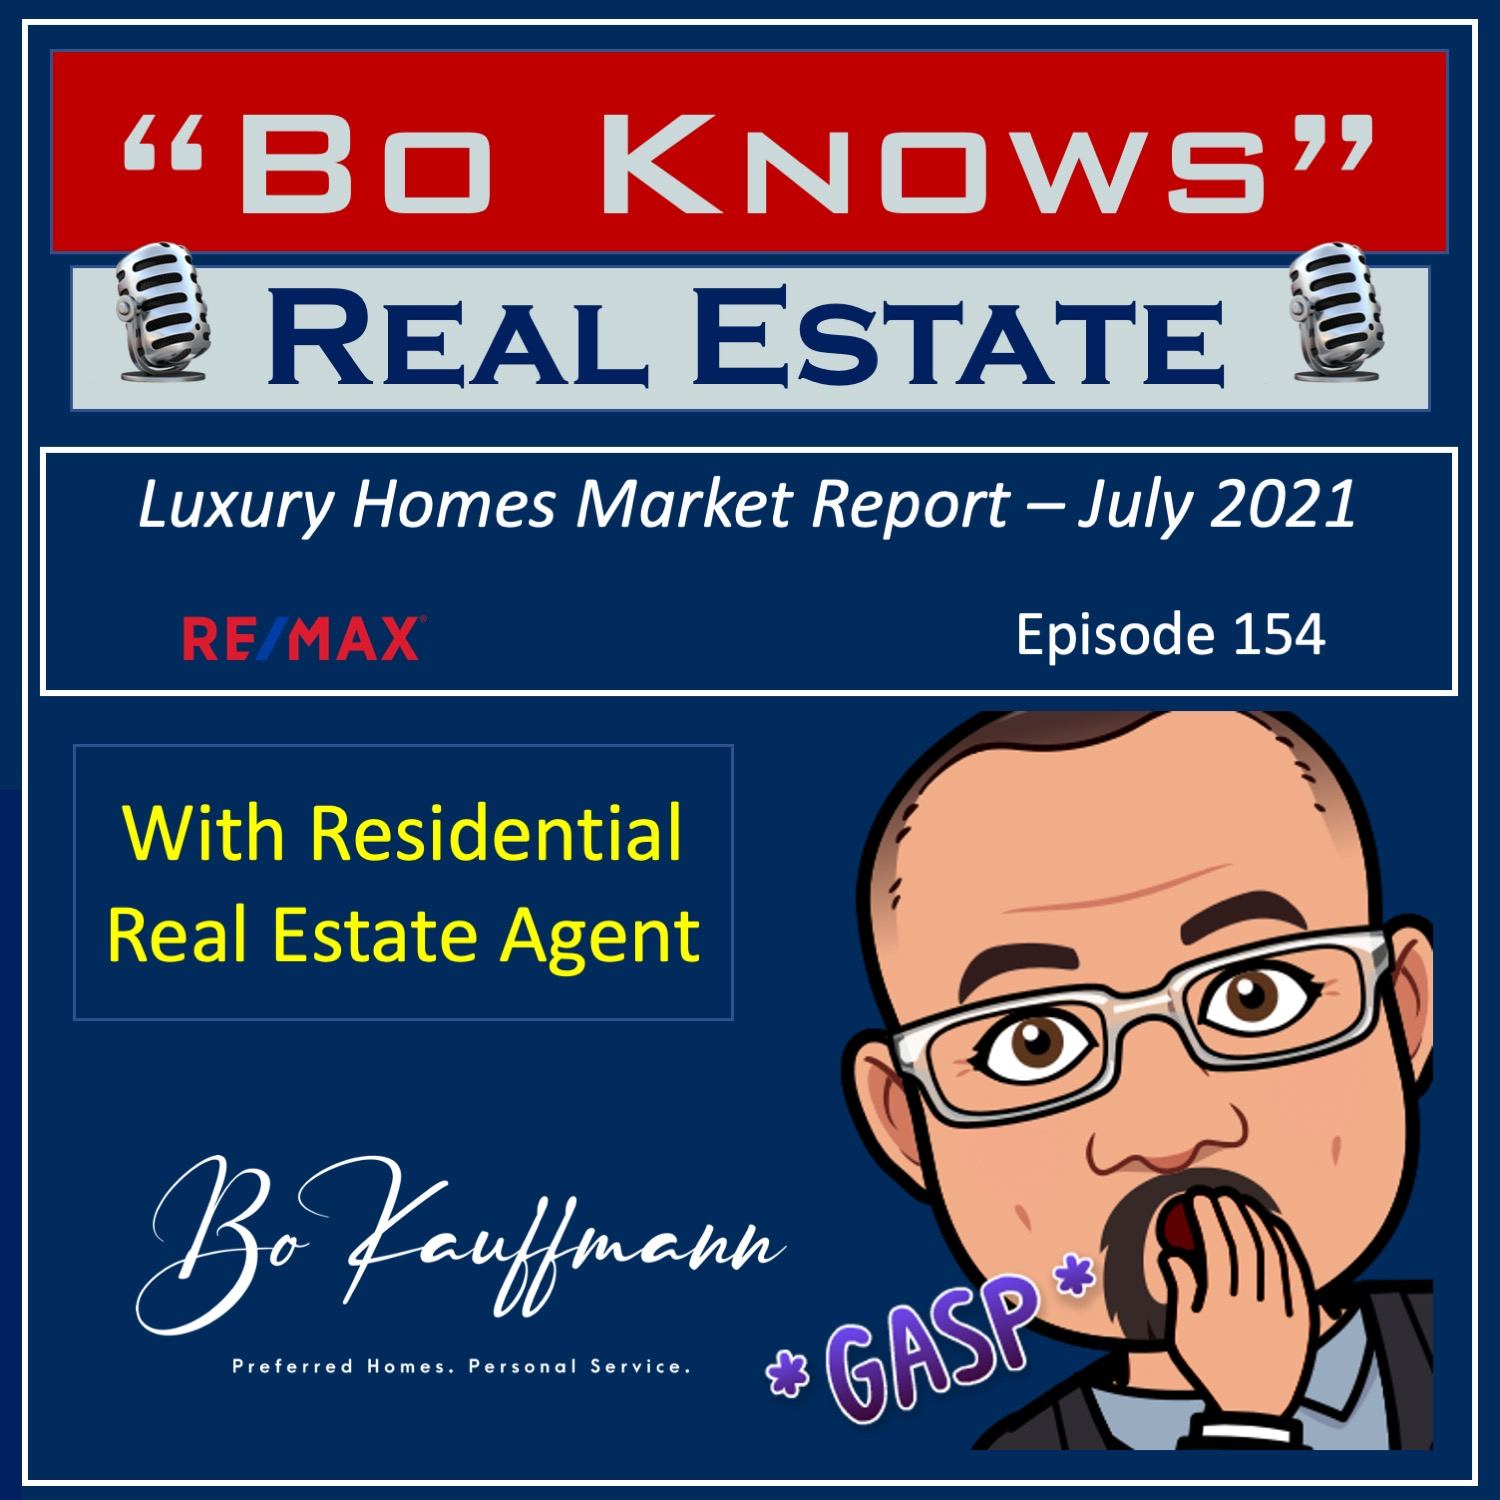 Artwork for podcast Bo Knows Real Estate